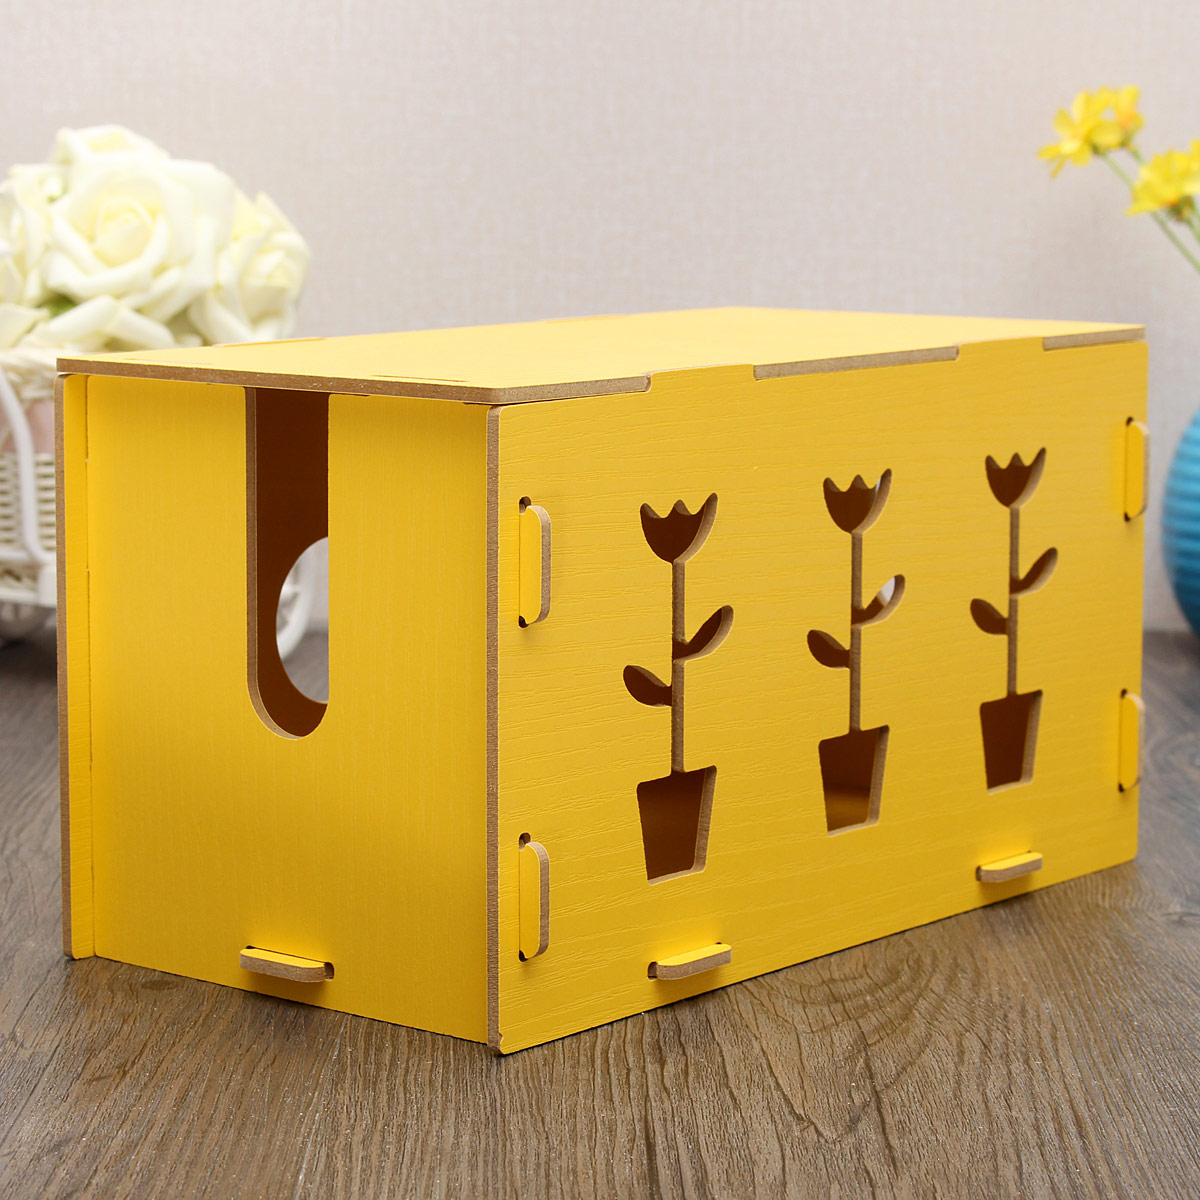 home wooden handmade diy cable jewelry storage box container yellow lazada singapore. Black Bedroom Furniture Sets. Home Design Ideas